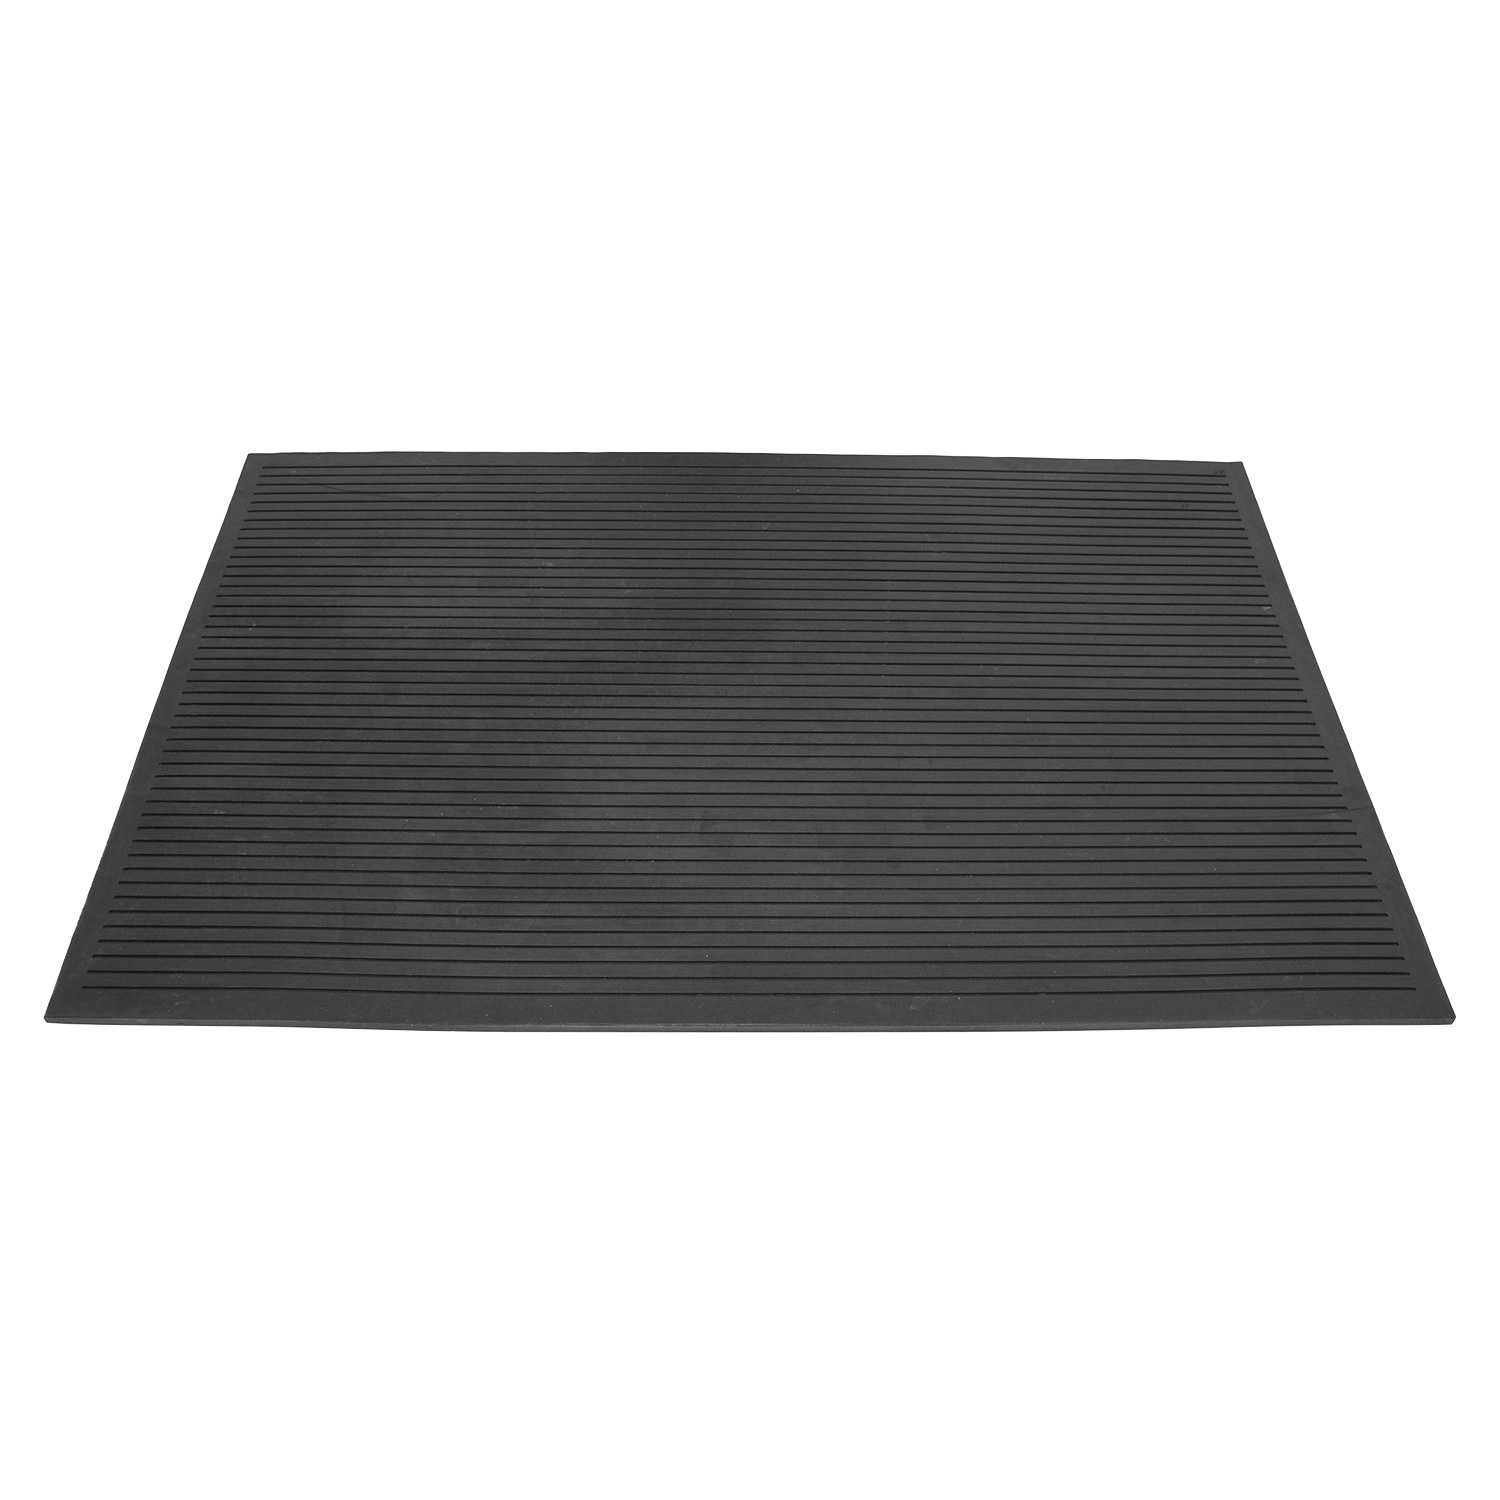 Gym Floor MatsHeavy Duty Solid Rubber5 Mat PackHammer Top18mm Thick